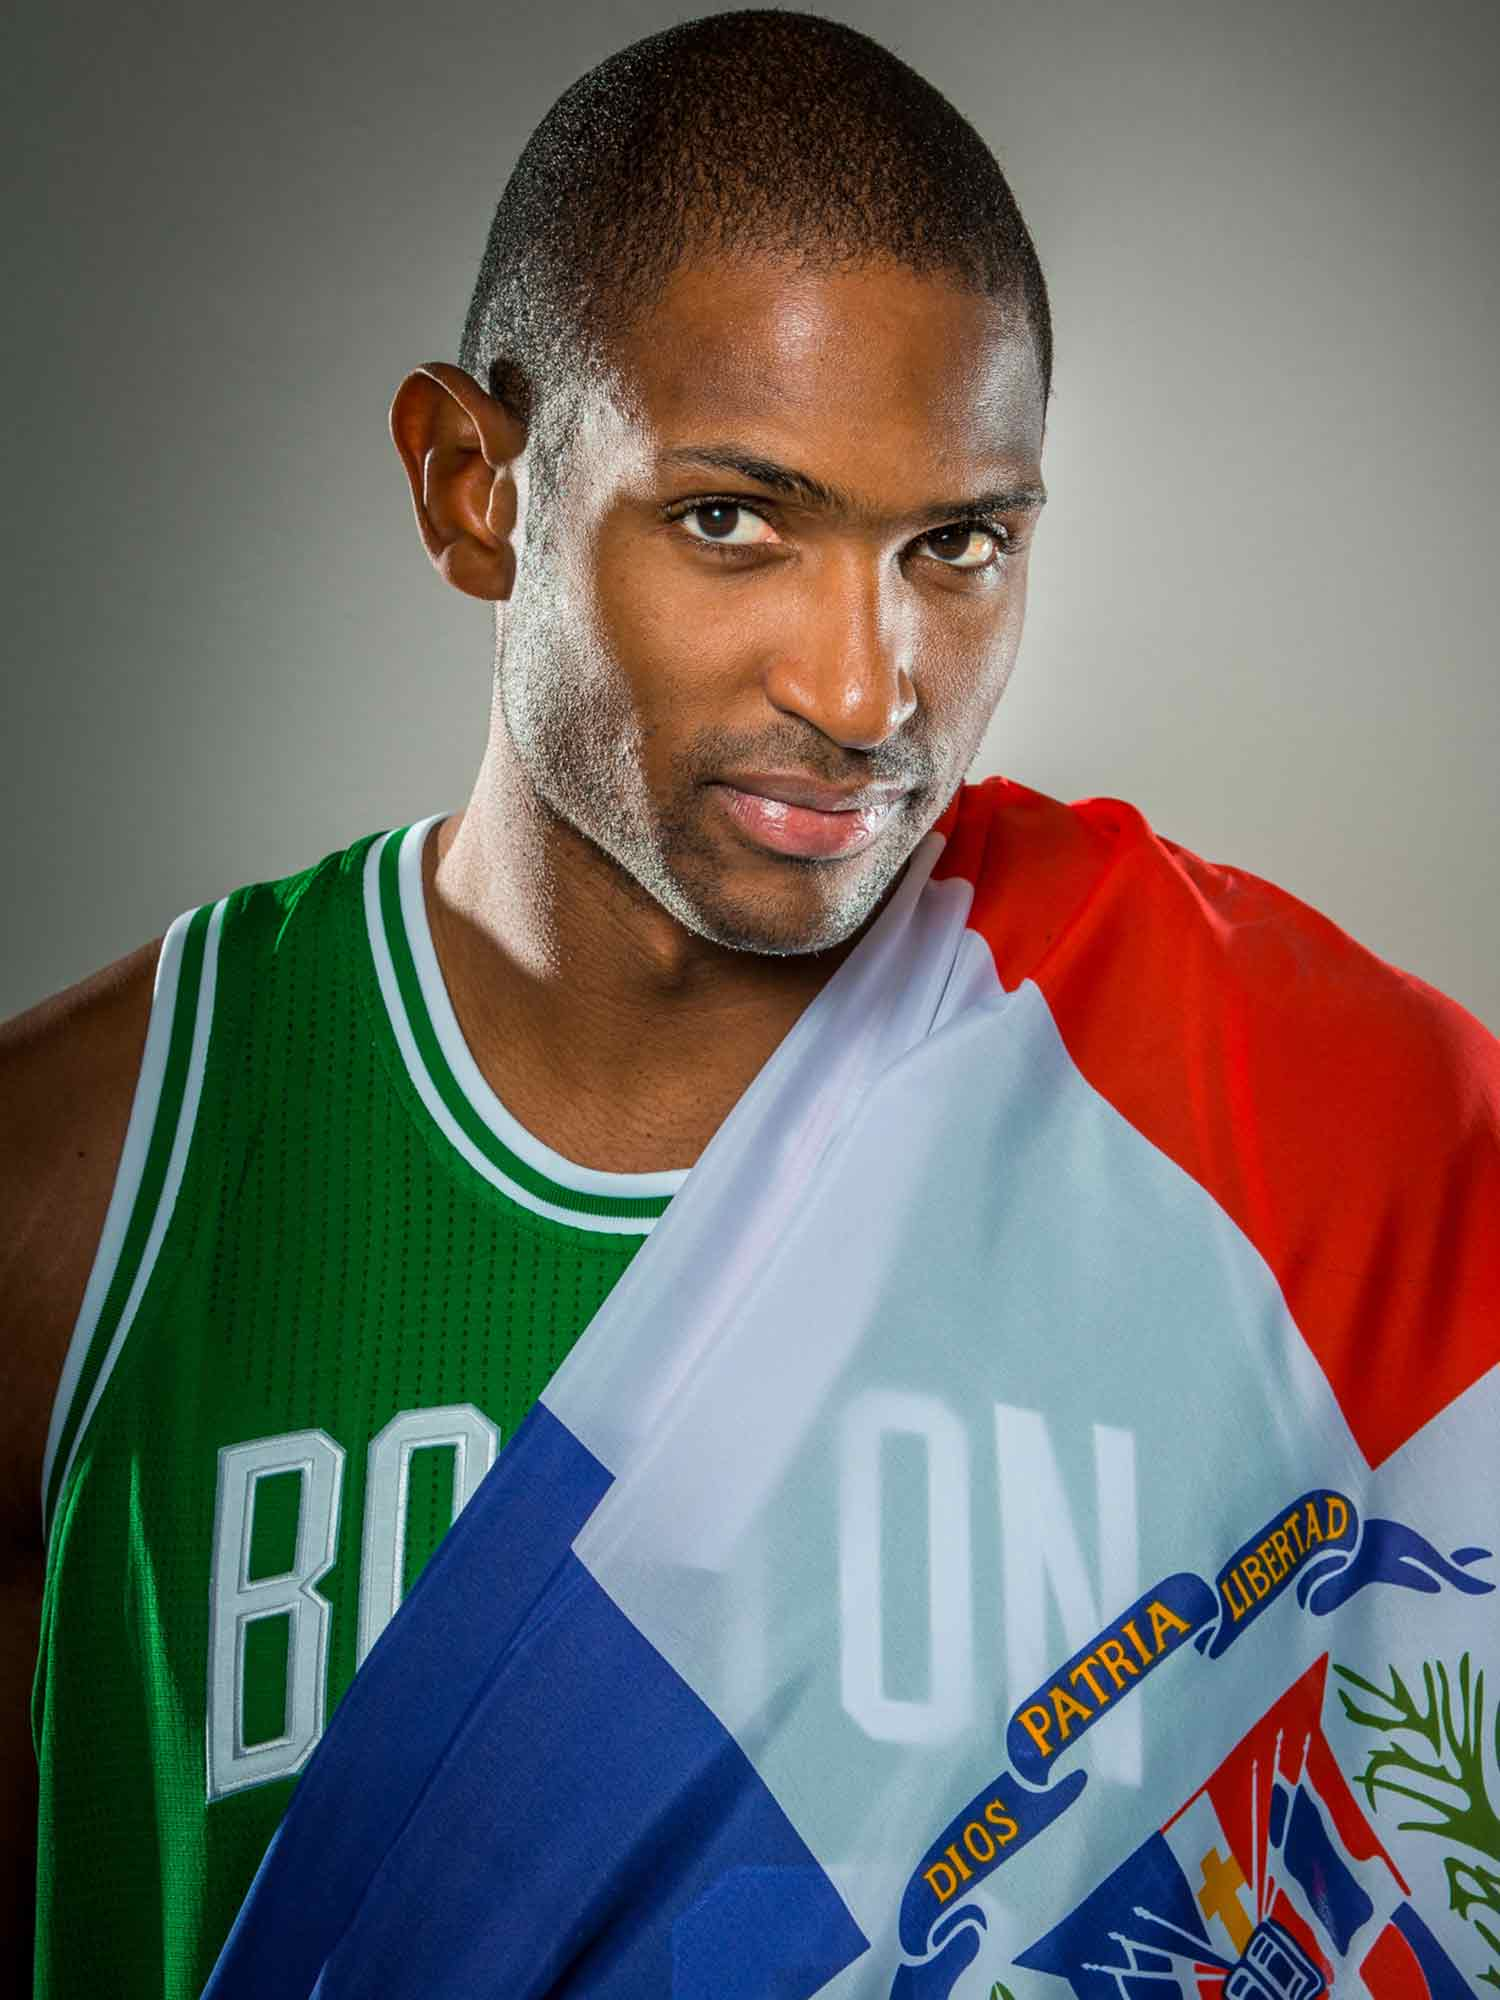 al horford - photo #9